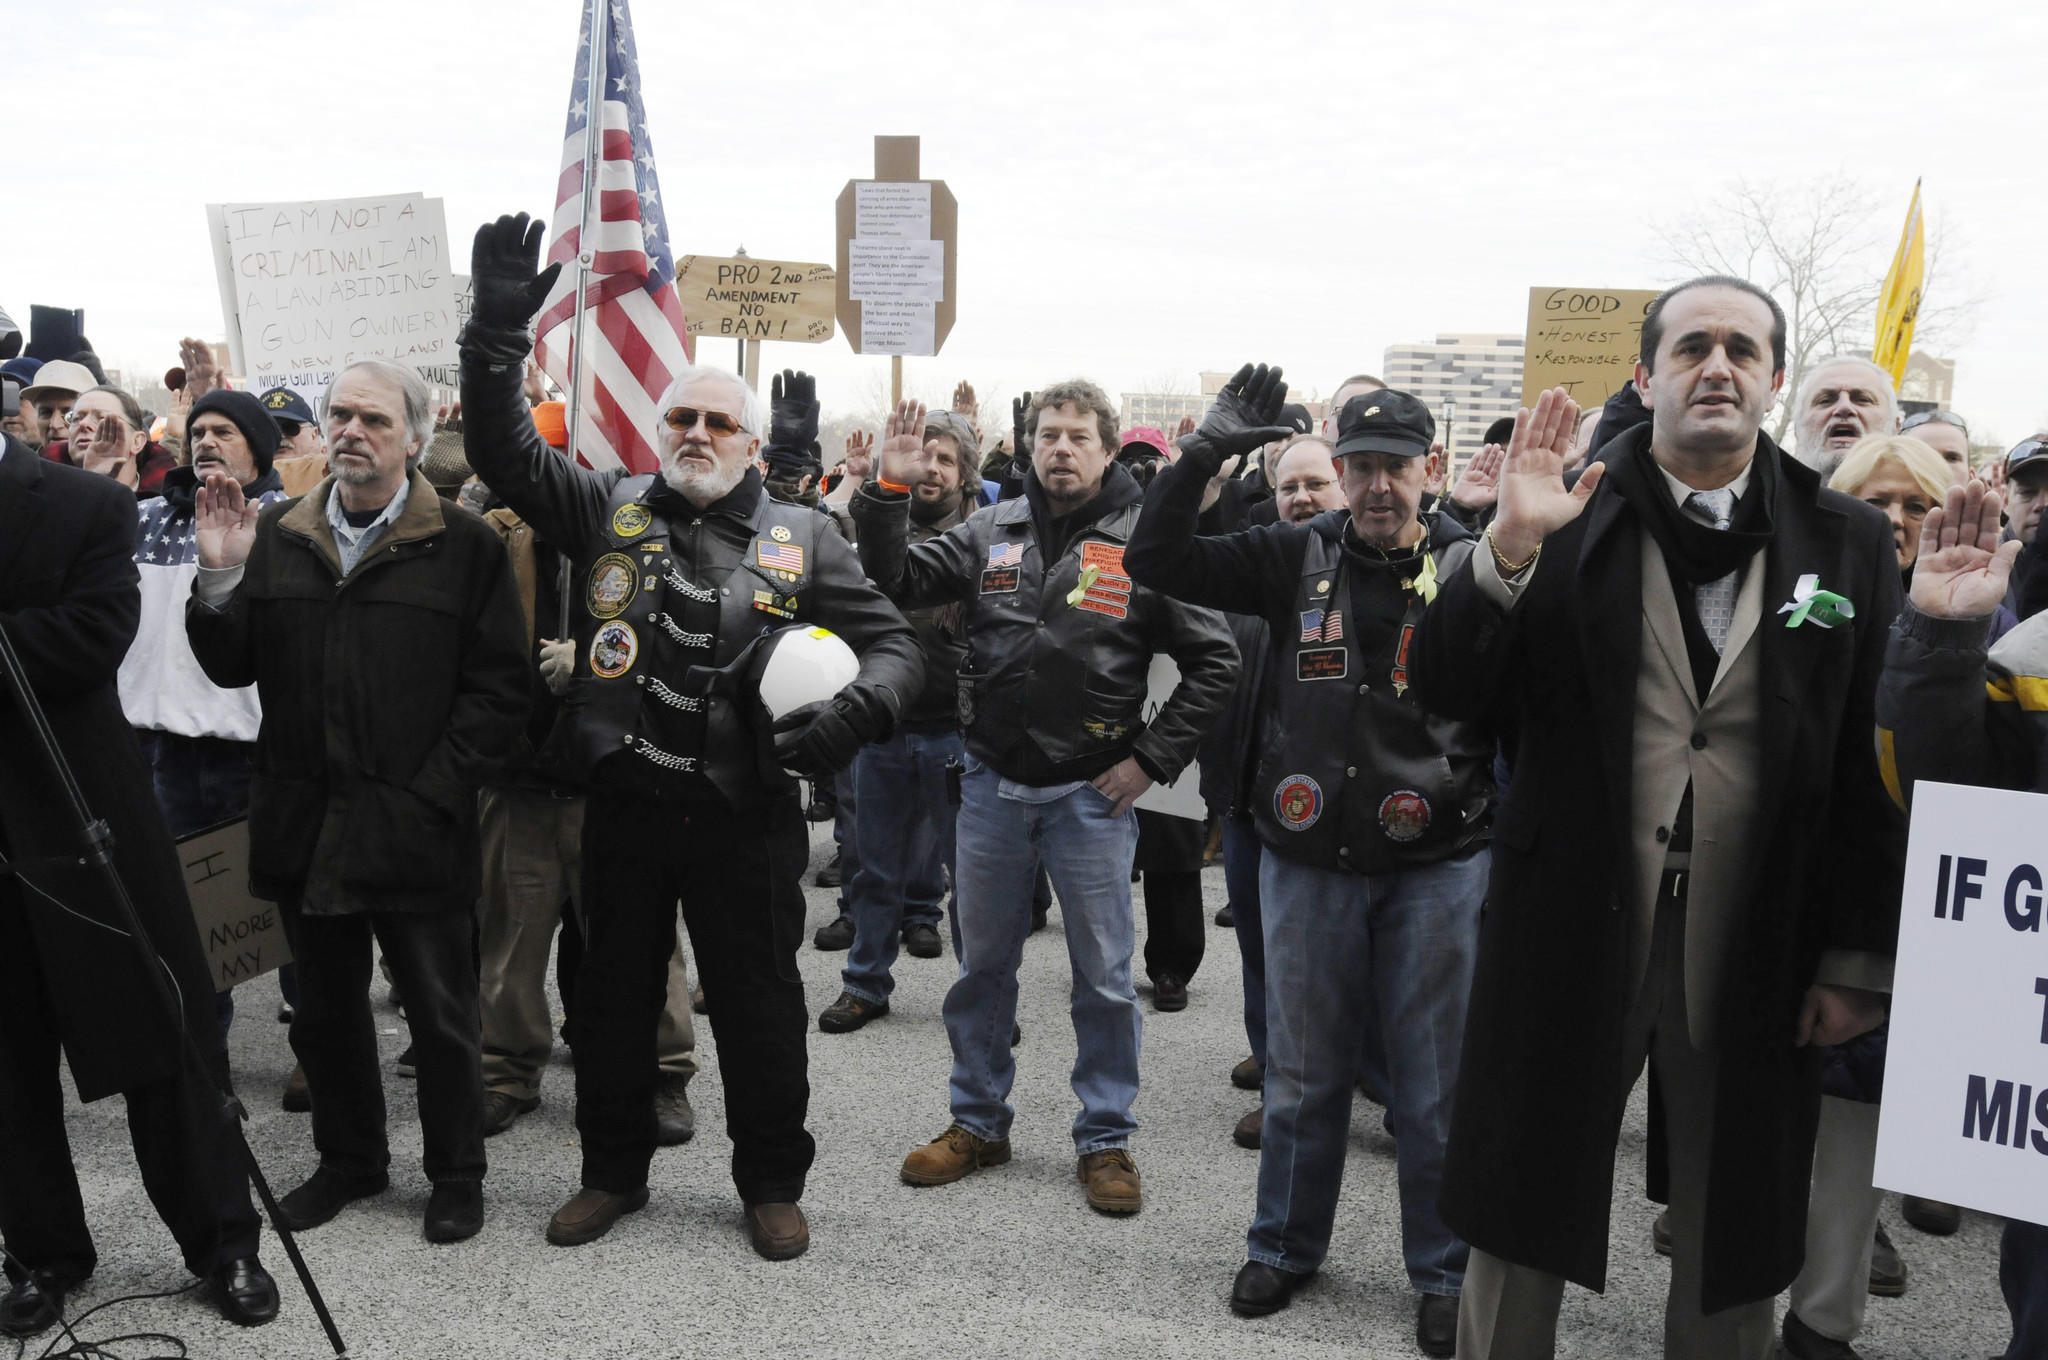 Gun rights supporters take an oath to uphold the Constitution at Gun Appreciation Day in Hartford on Jan. 19, 2013.